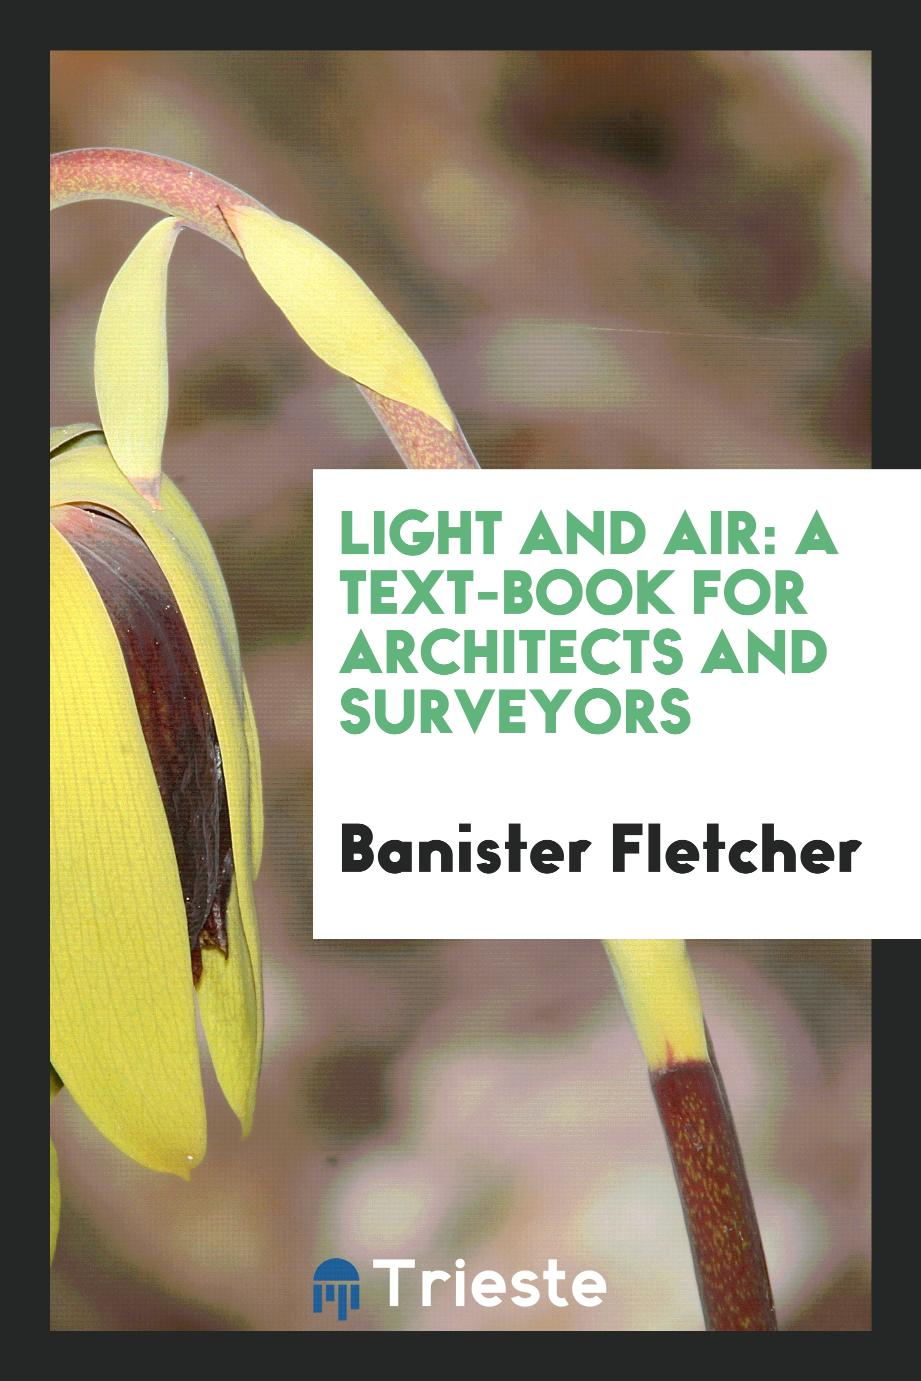 Light and Air: A Text-Book for Architects and Surveyors